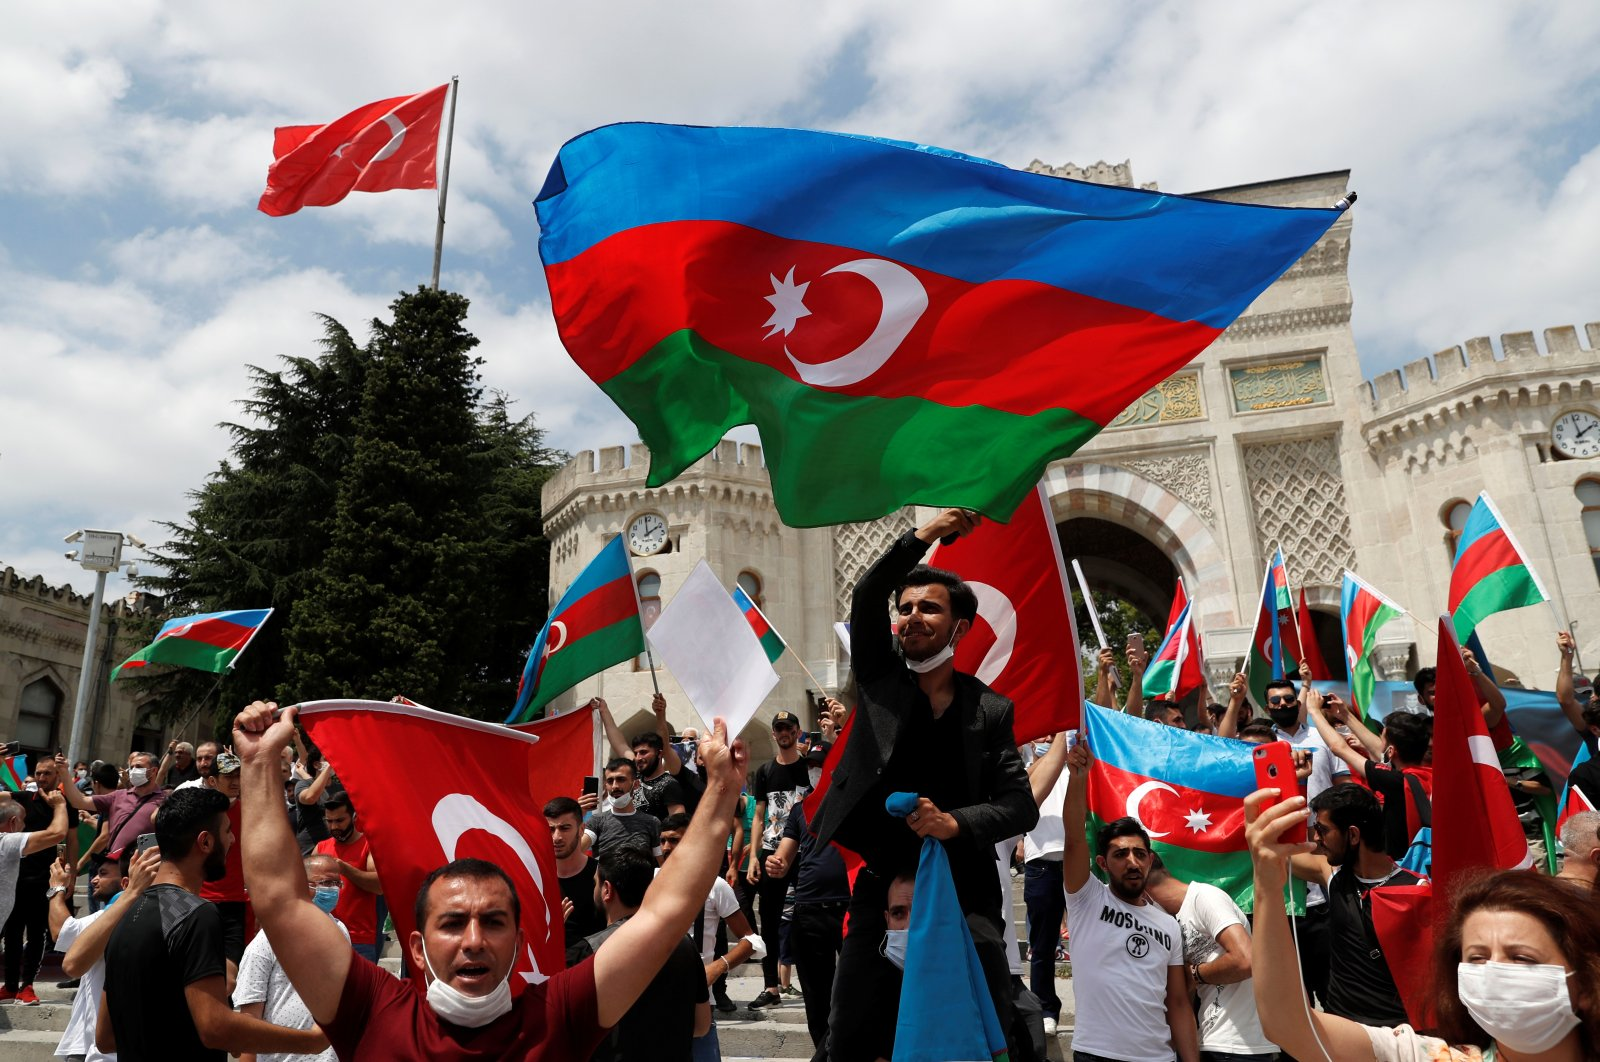 Azerbaijani men living in Turkey wave flags of Turkey and Azerbaijan during a protest following clashes between Azerbaijan and Armenia, in Istanbul, Turkey, July 19, 2020. (Reuters Photo)